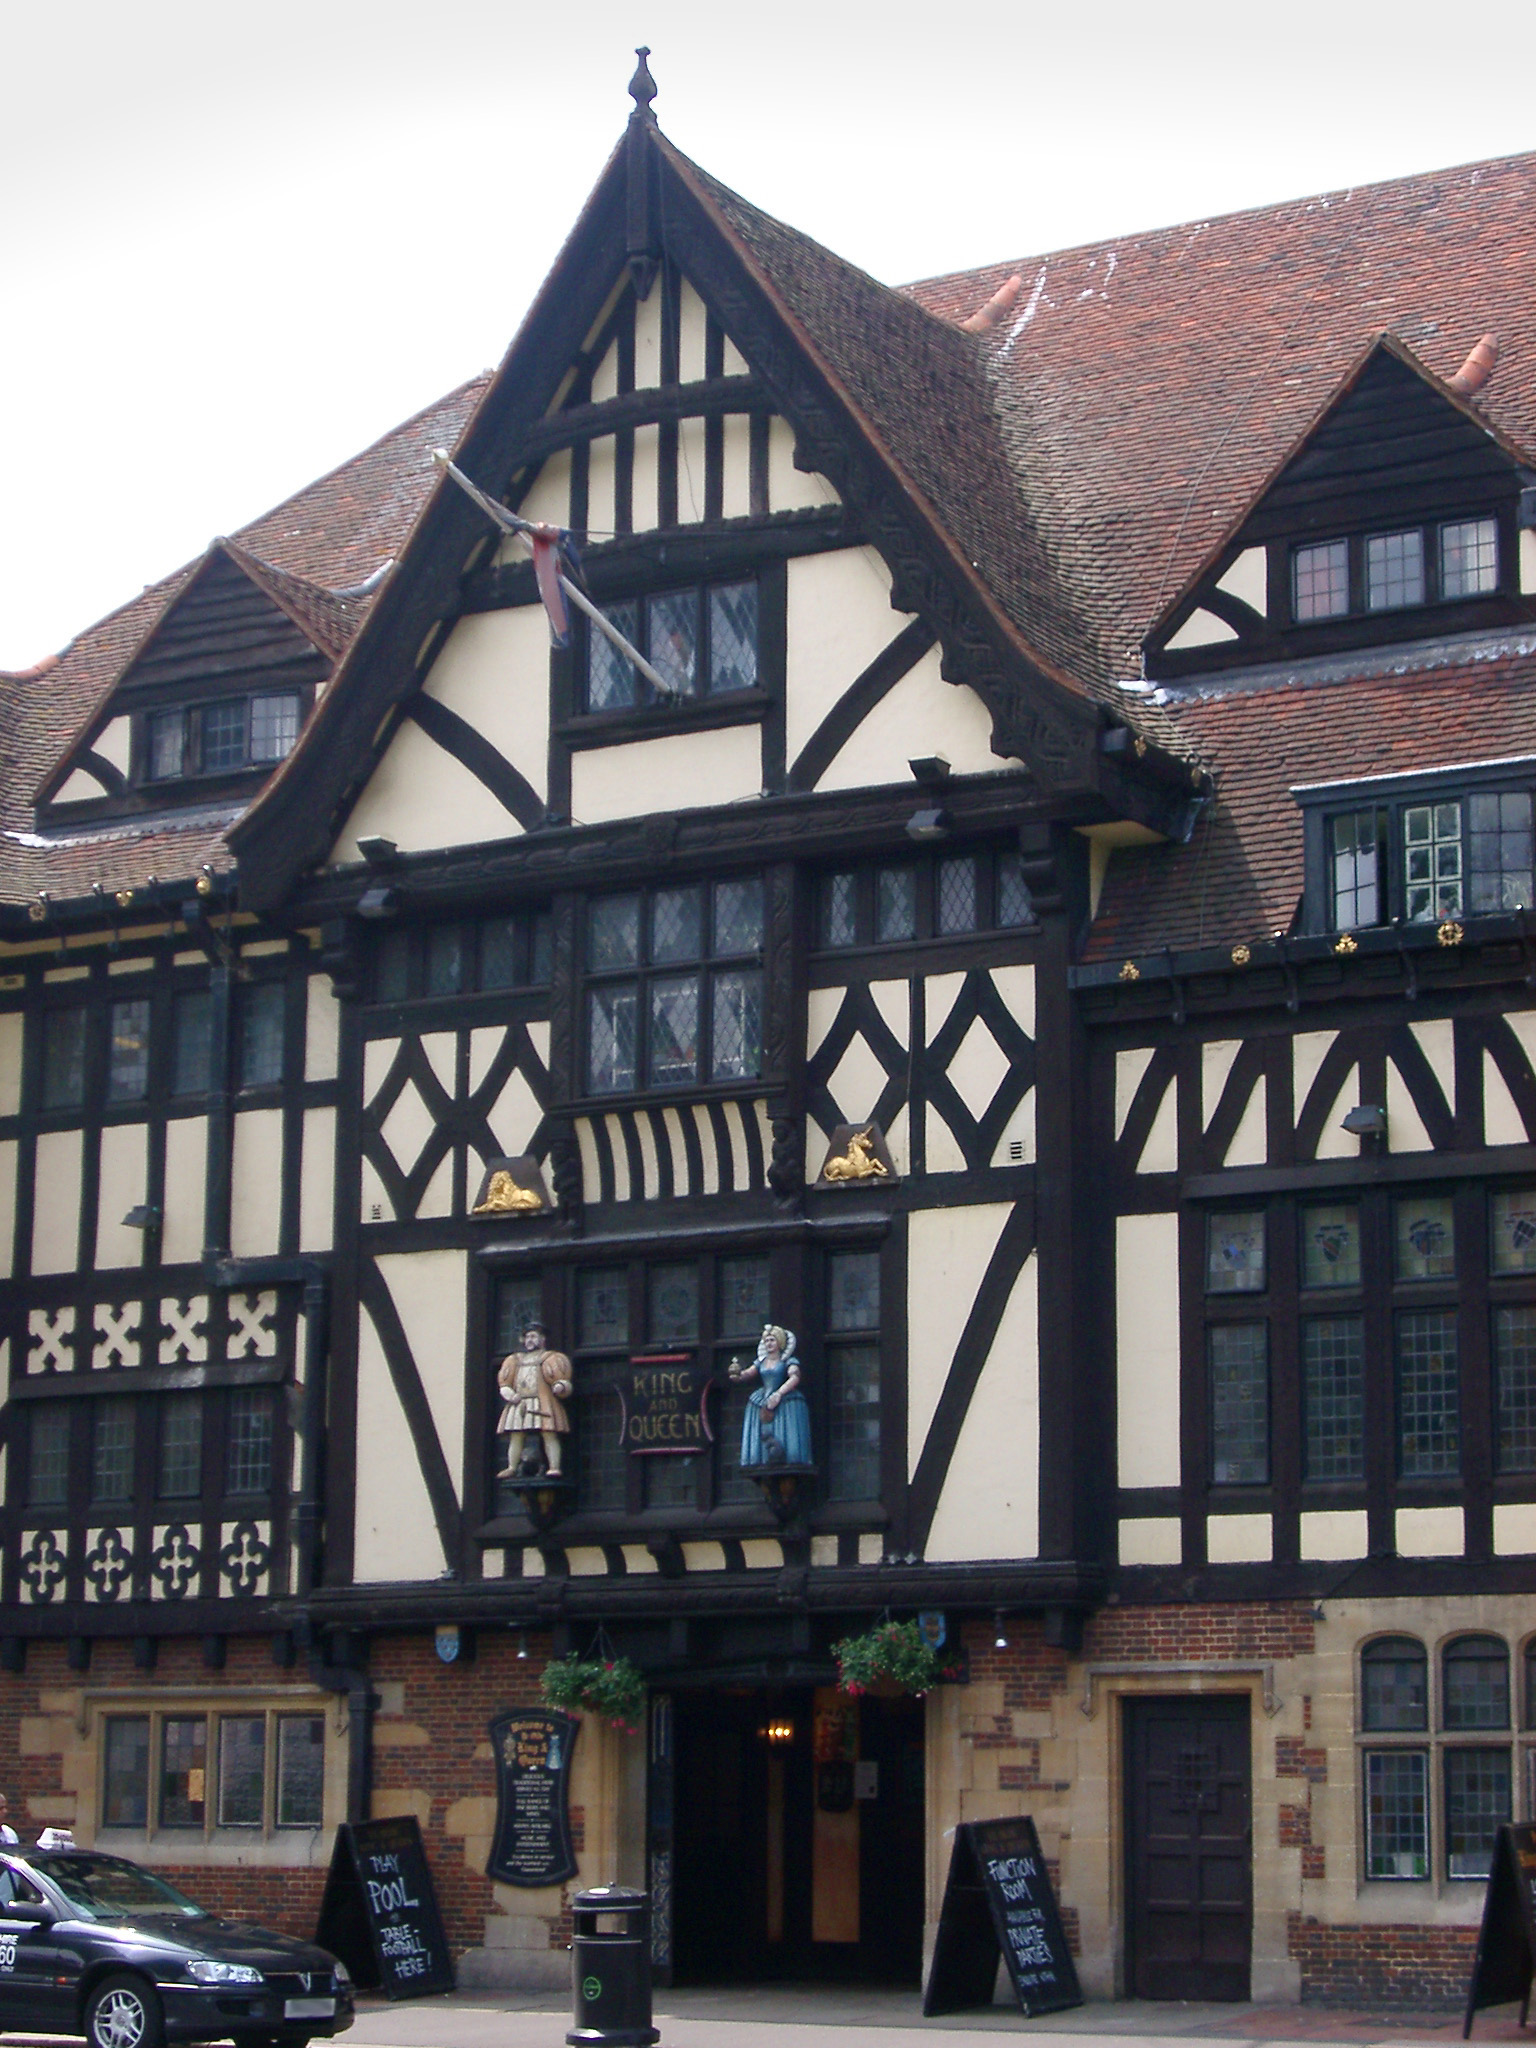 Tudor frame pub facade showing the traditional exterior timber framework on  the white walls with two